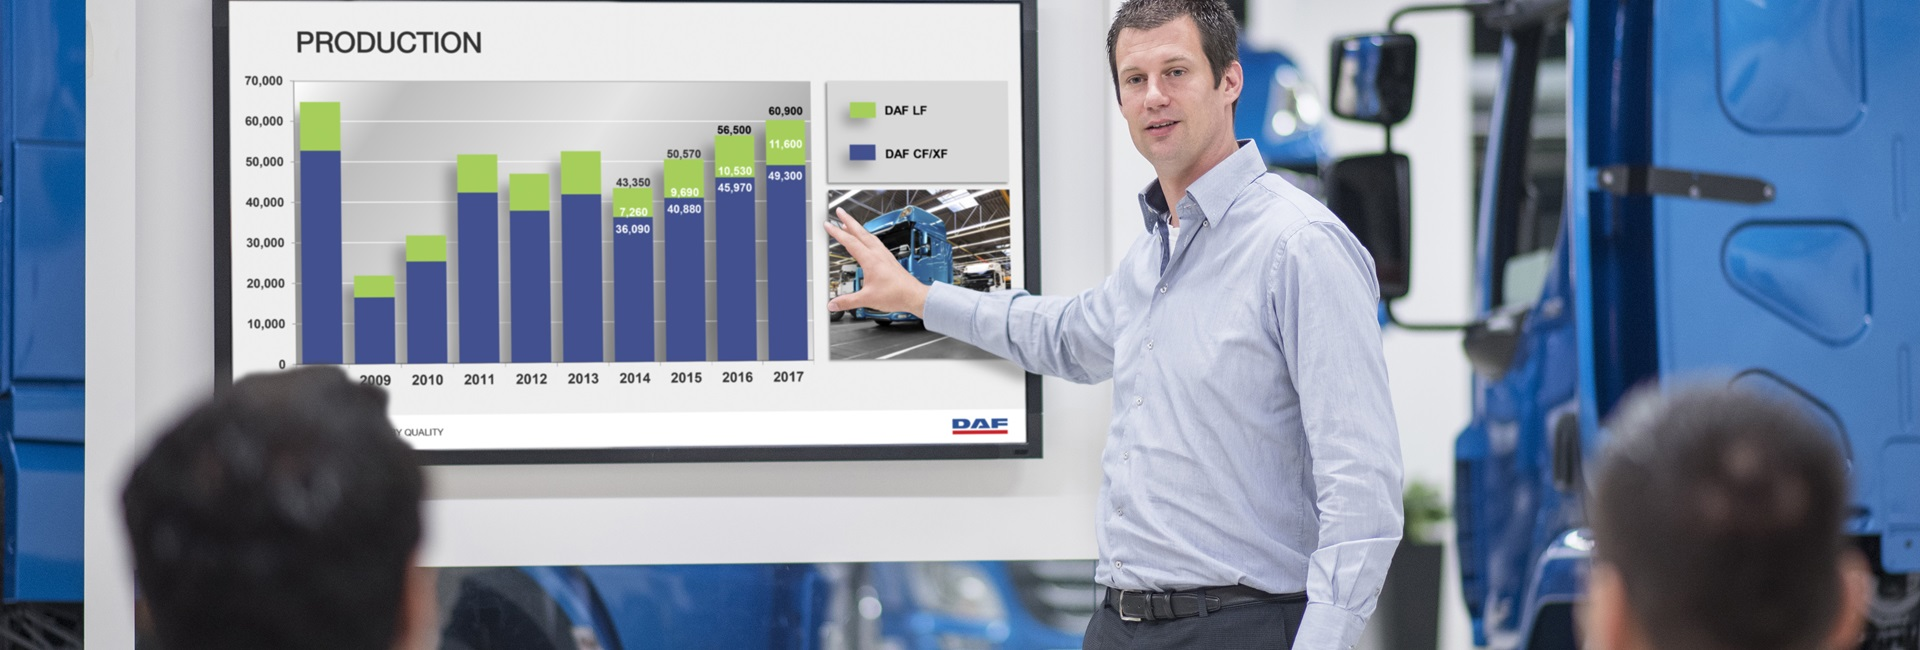 DAF Corporate Fact Figures 001 header